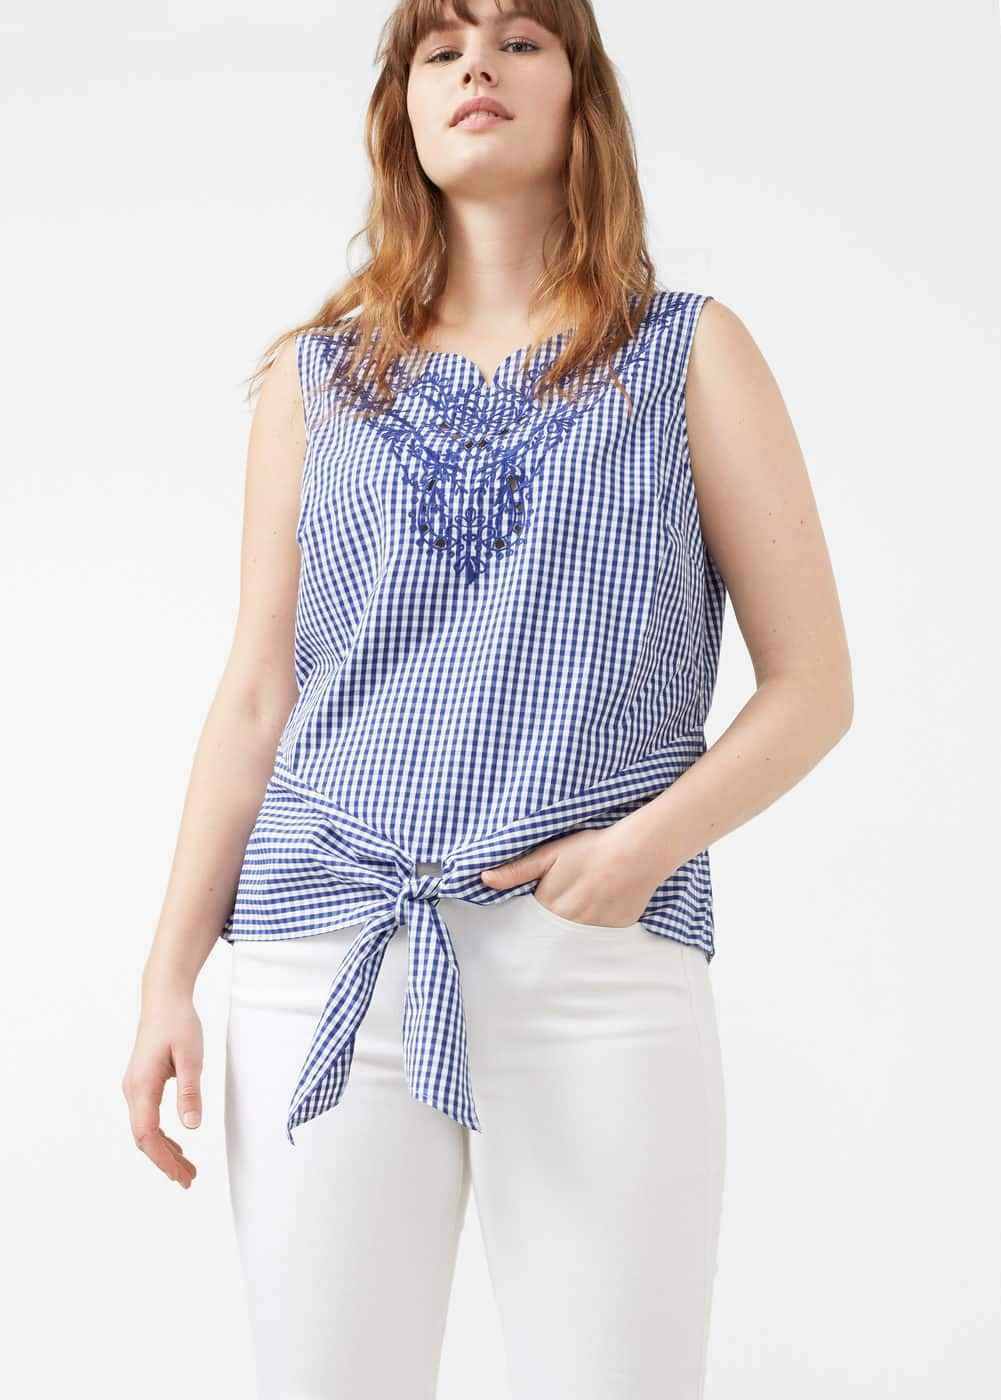 Knot detail check blouse | VIOLETA BY MNG